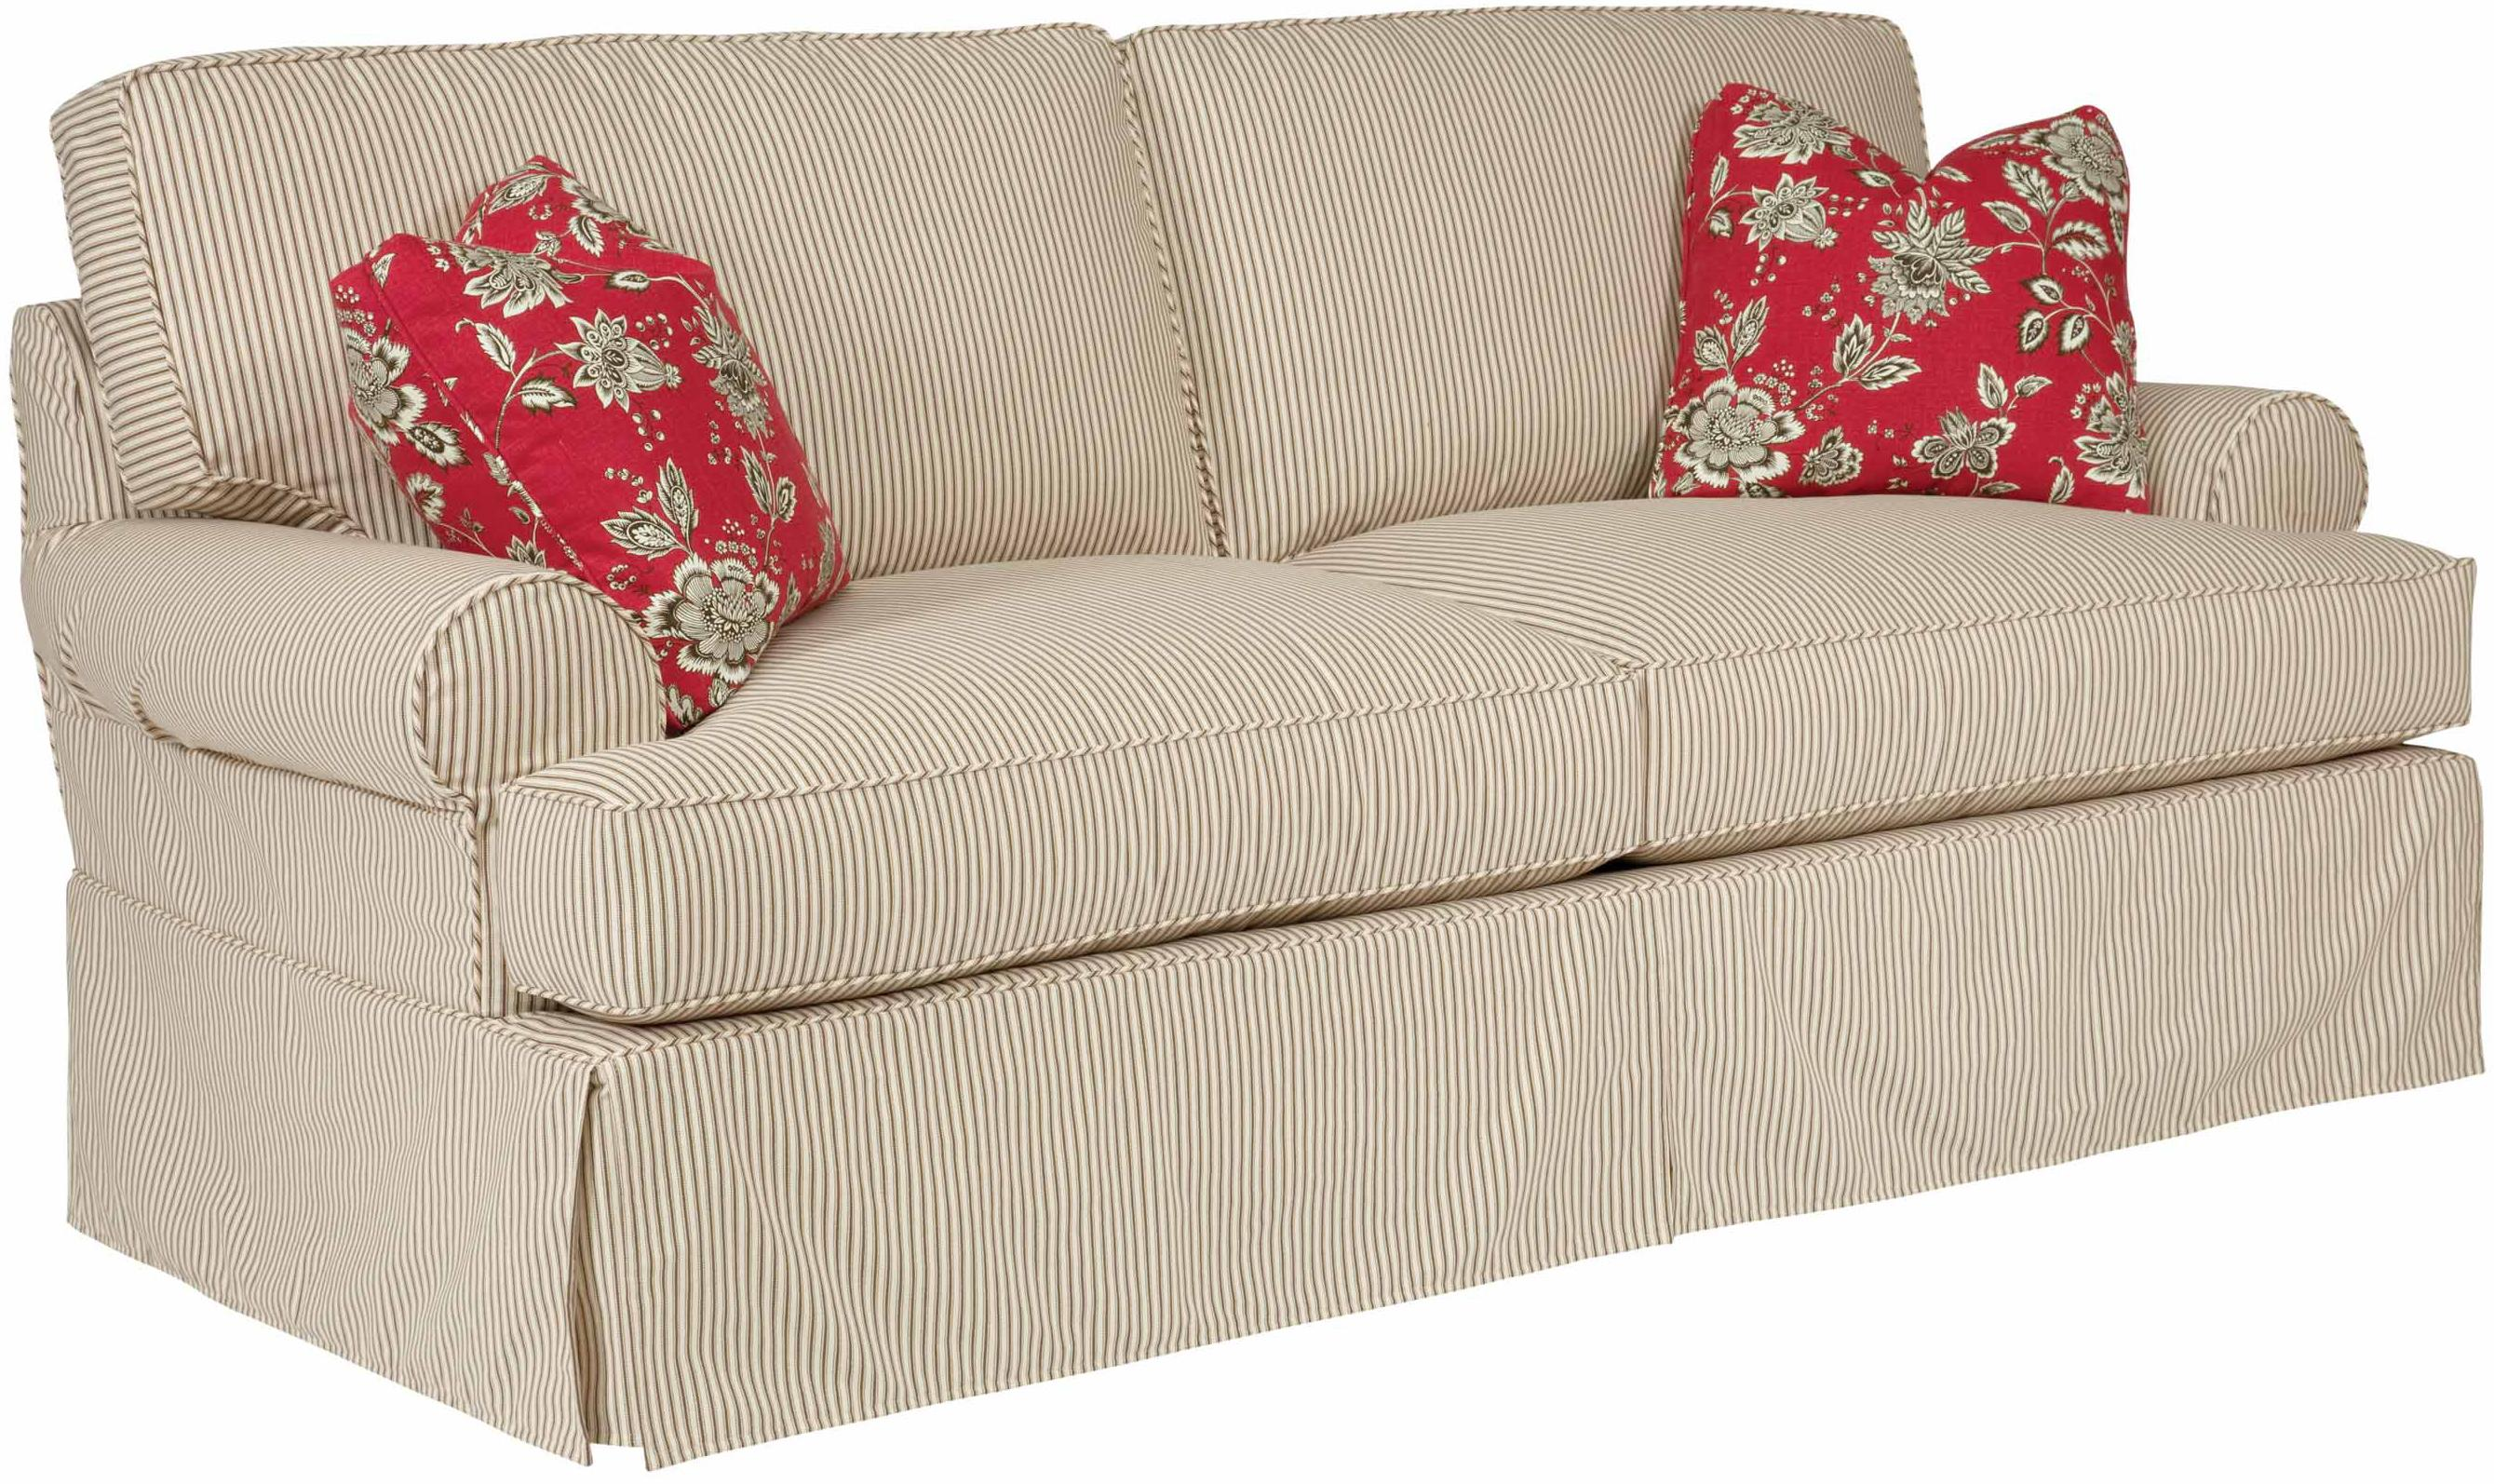 Samantha Two Seat Sofa with Slipcover Tailoring & Loose Pillow